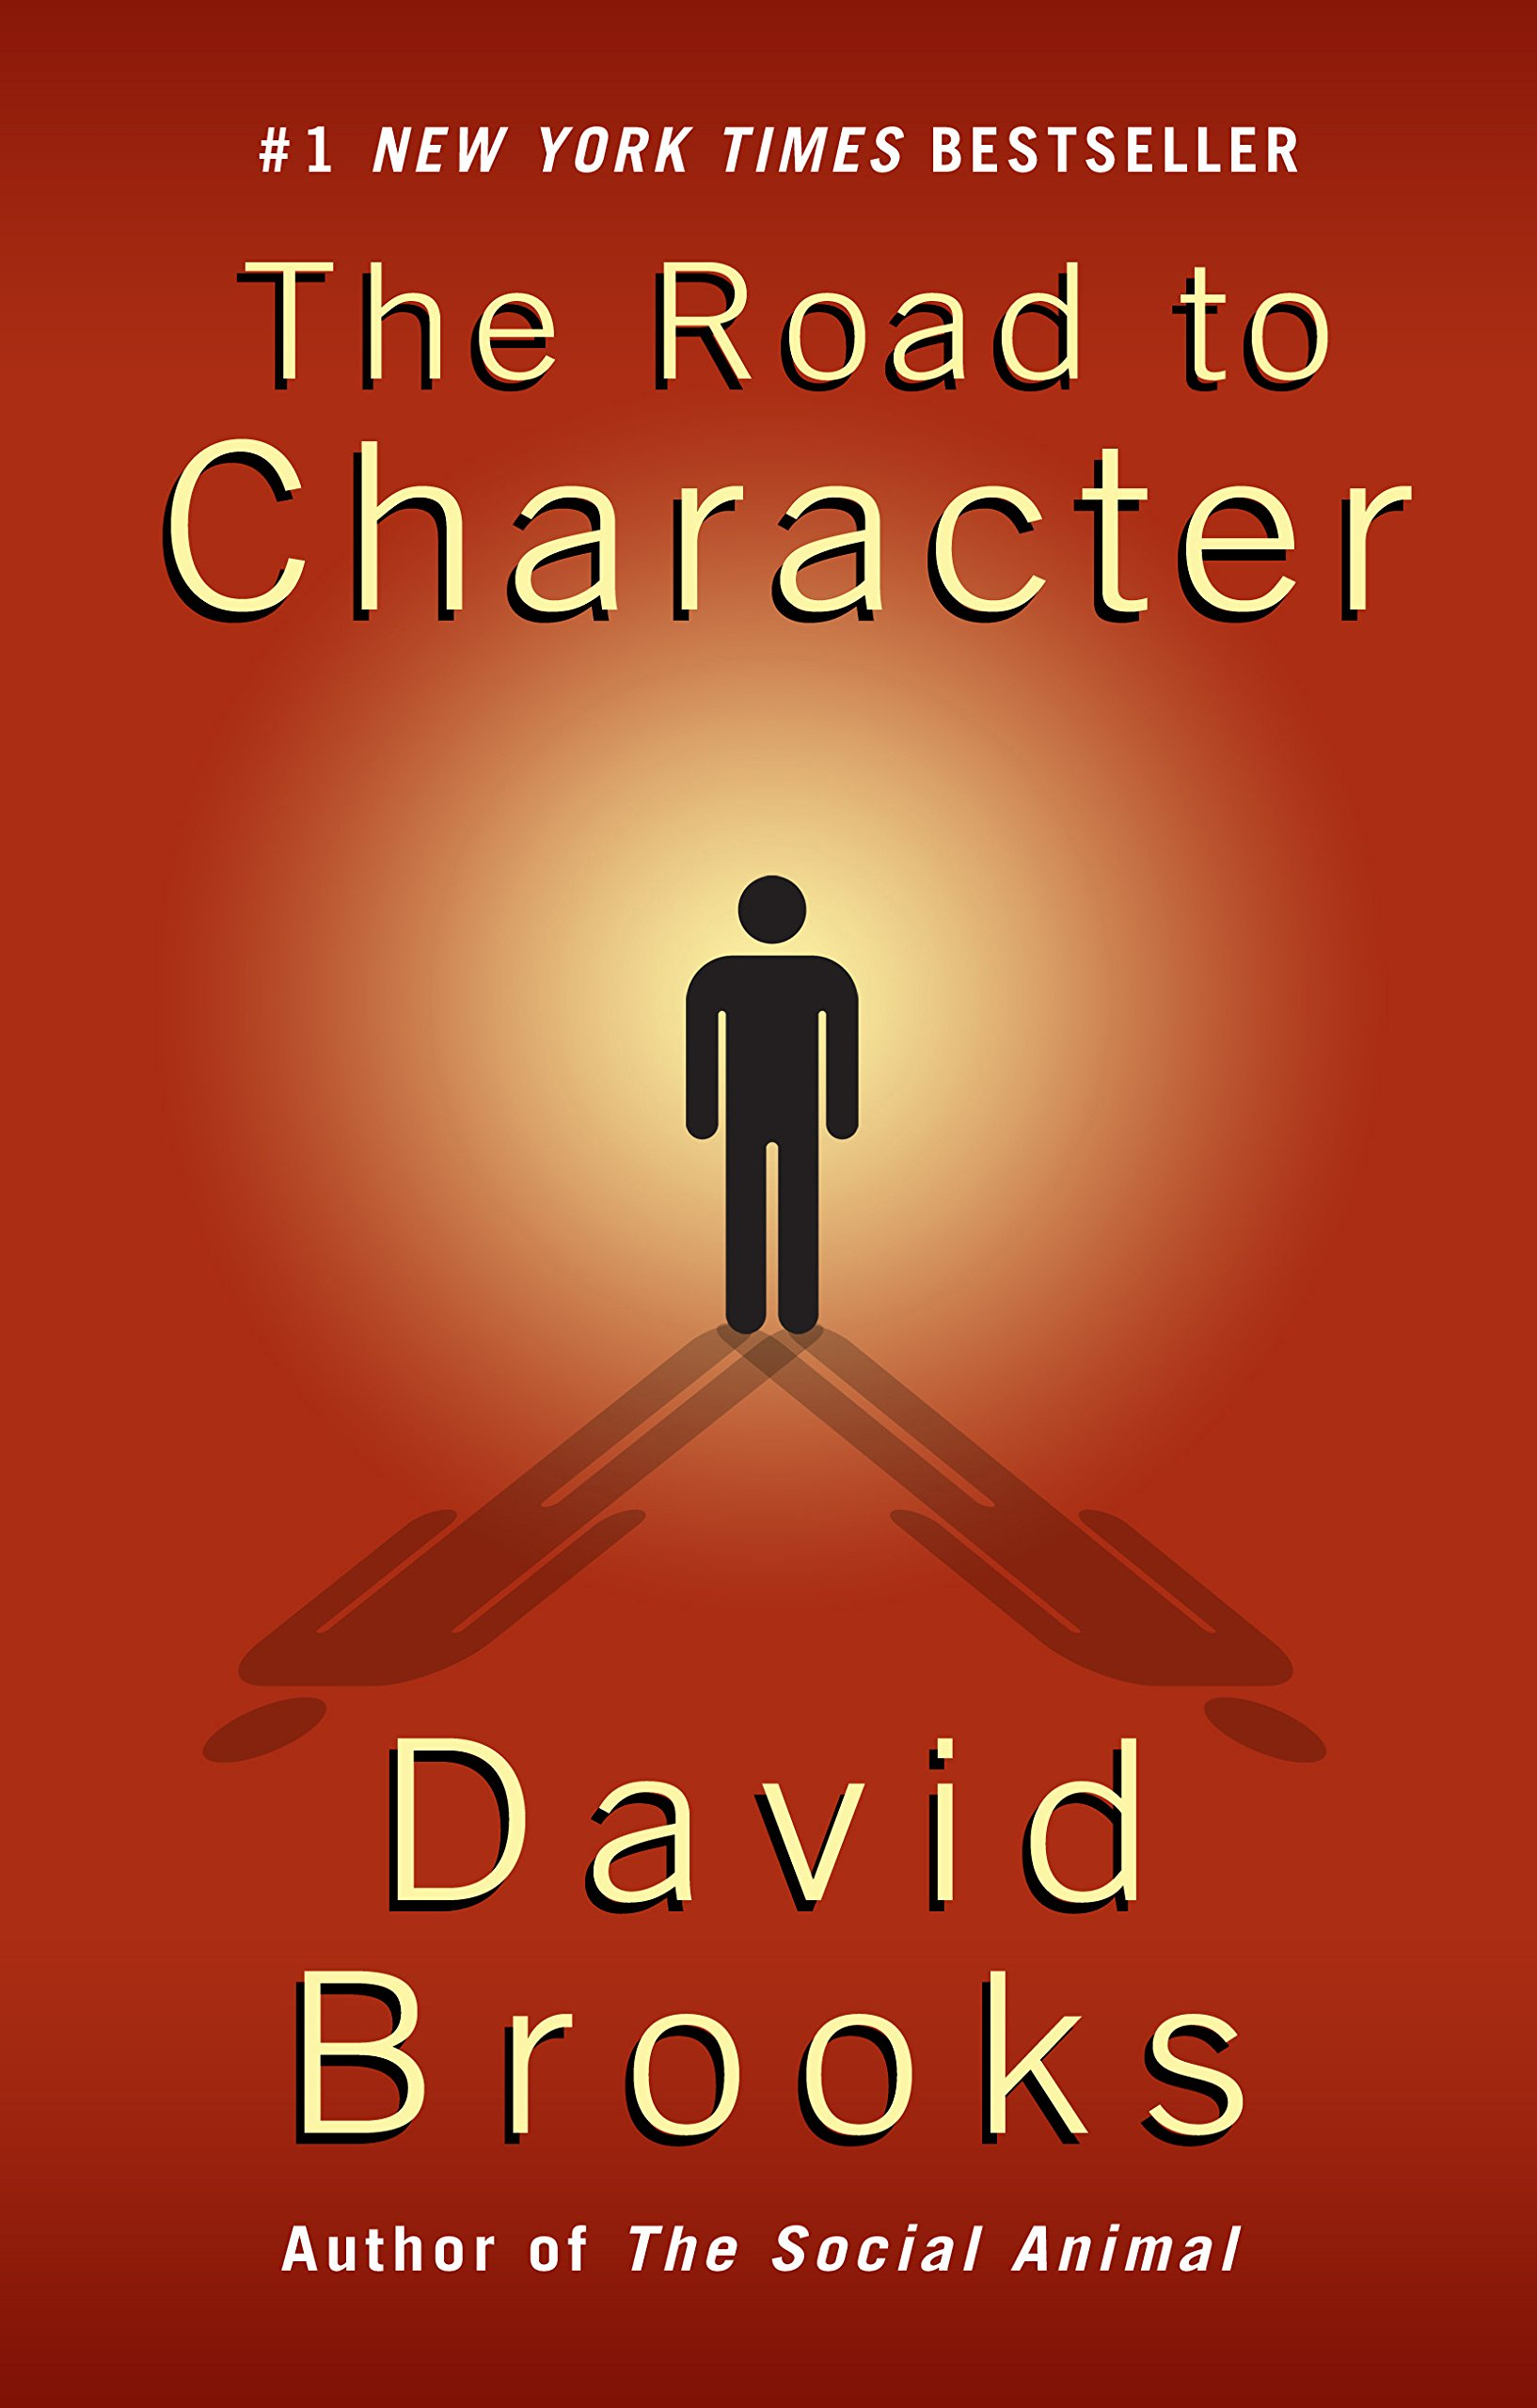 The Road to Character ISBN-13 9781594139376